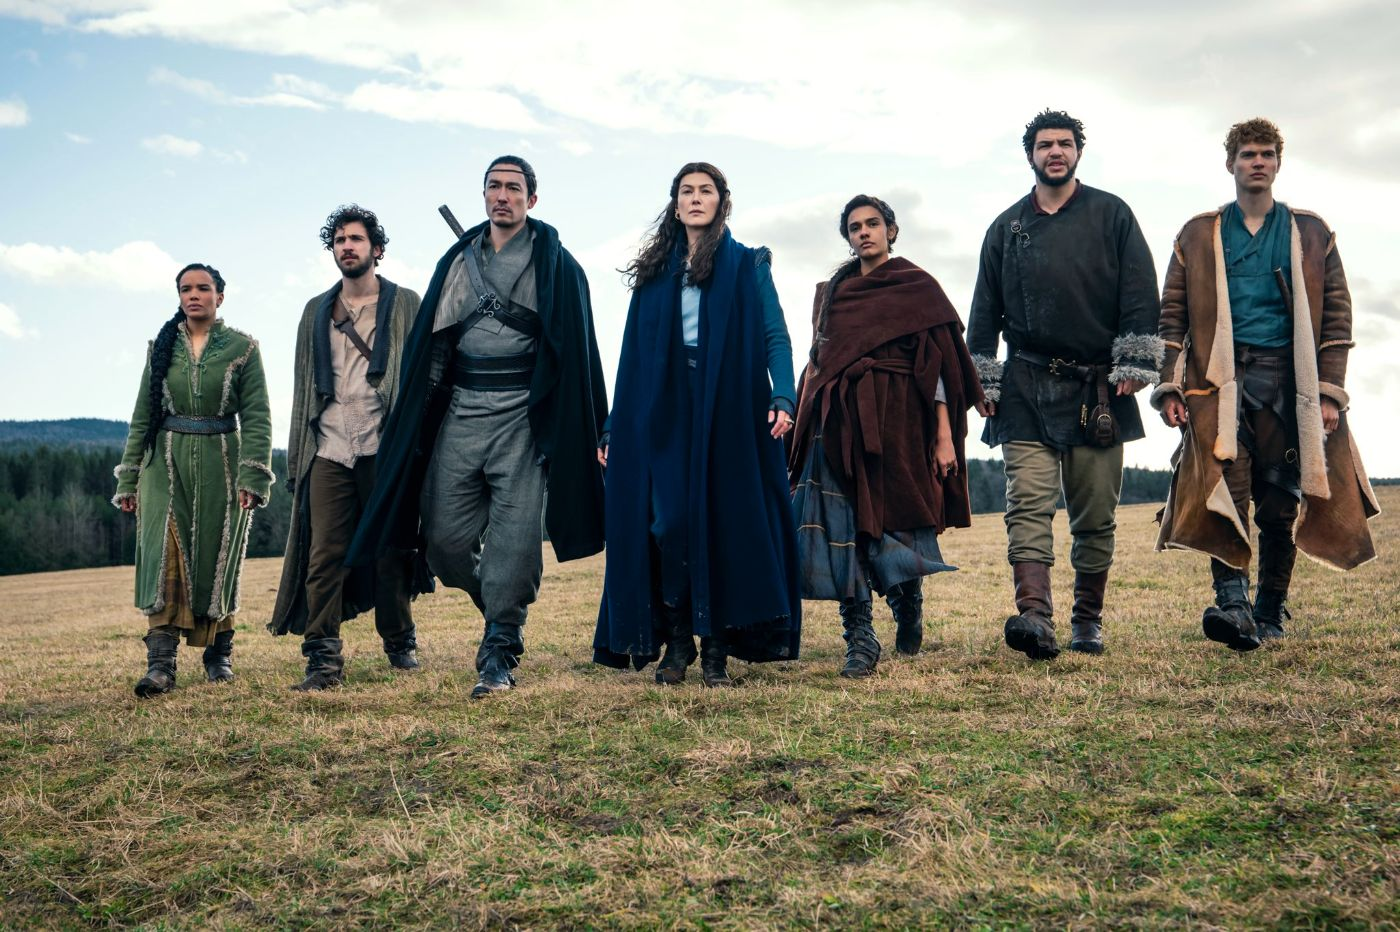 The Wheel of Time cast walks down a field